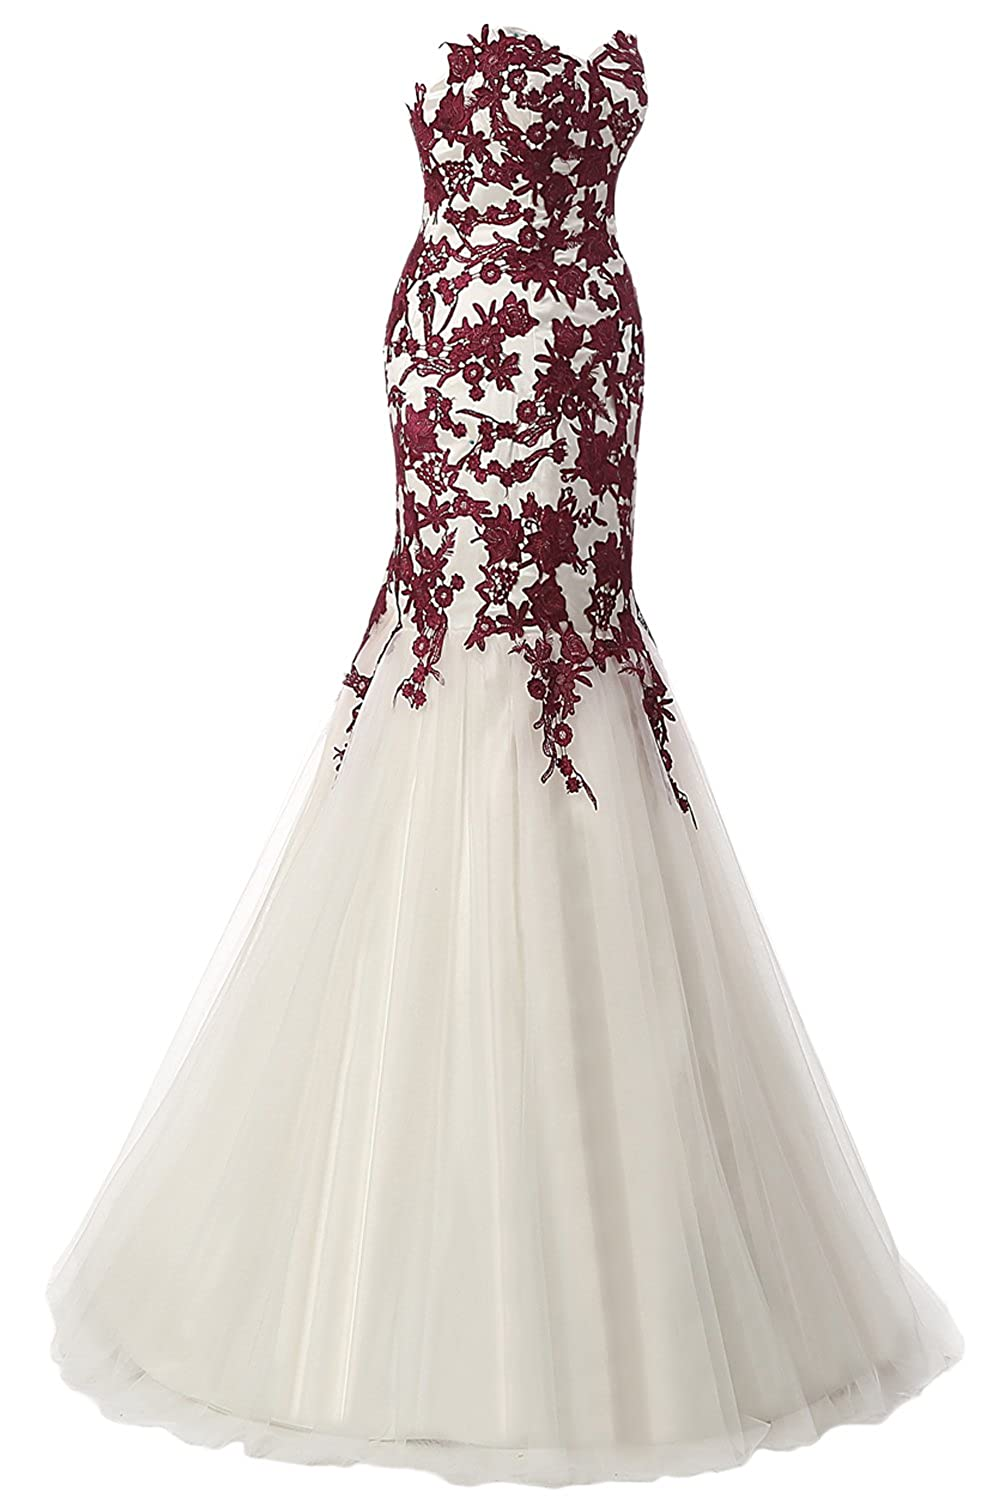 Sunvary Designer Evening Prom Dresses Mermaid Strapless Applique Tulle Gown at Amazon Womens Clothing store: